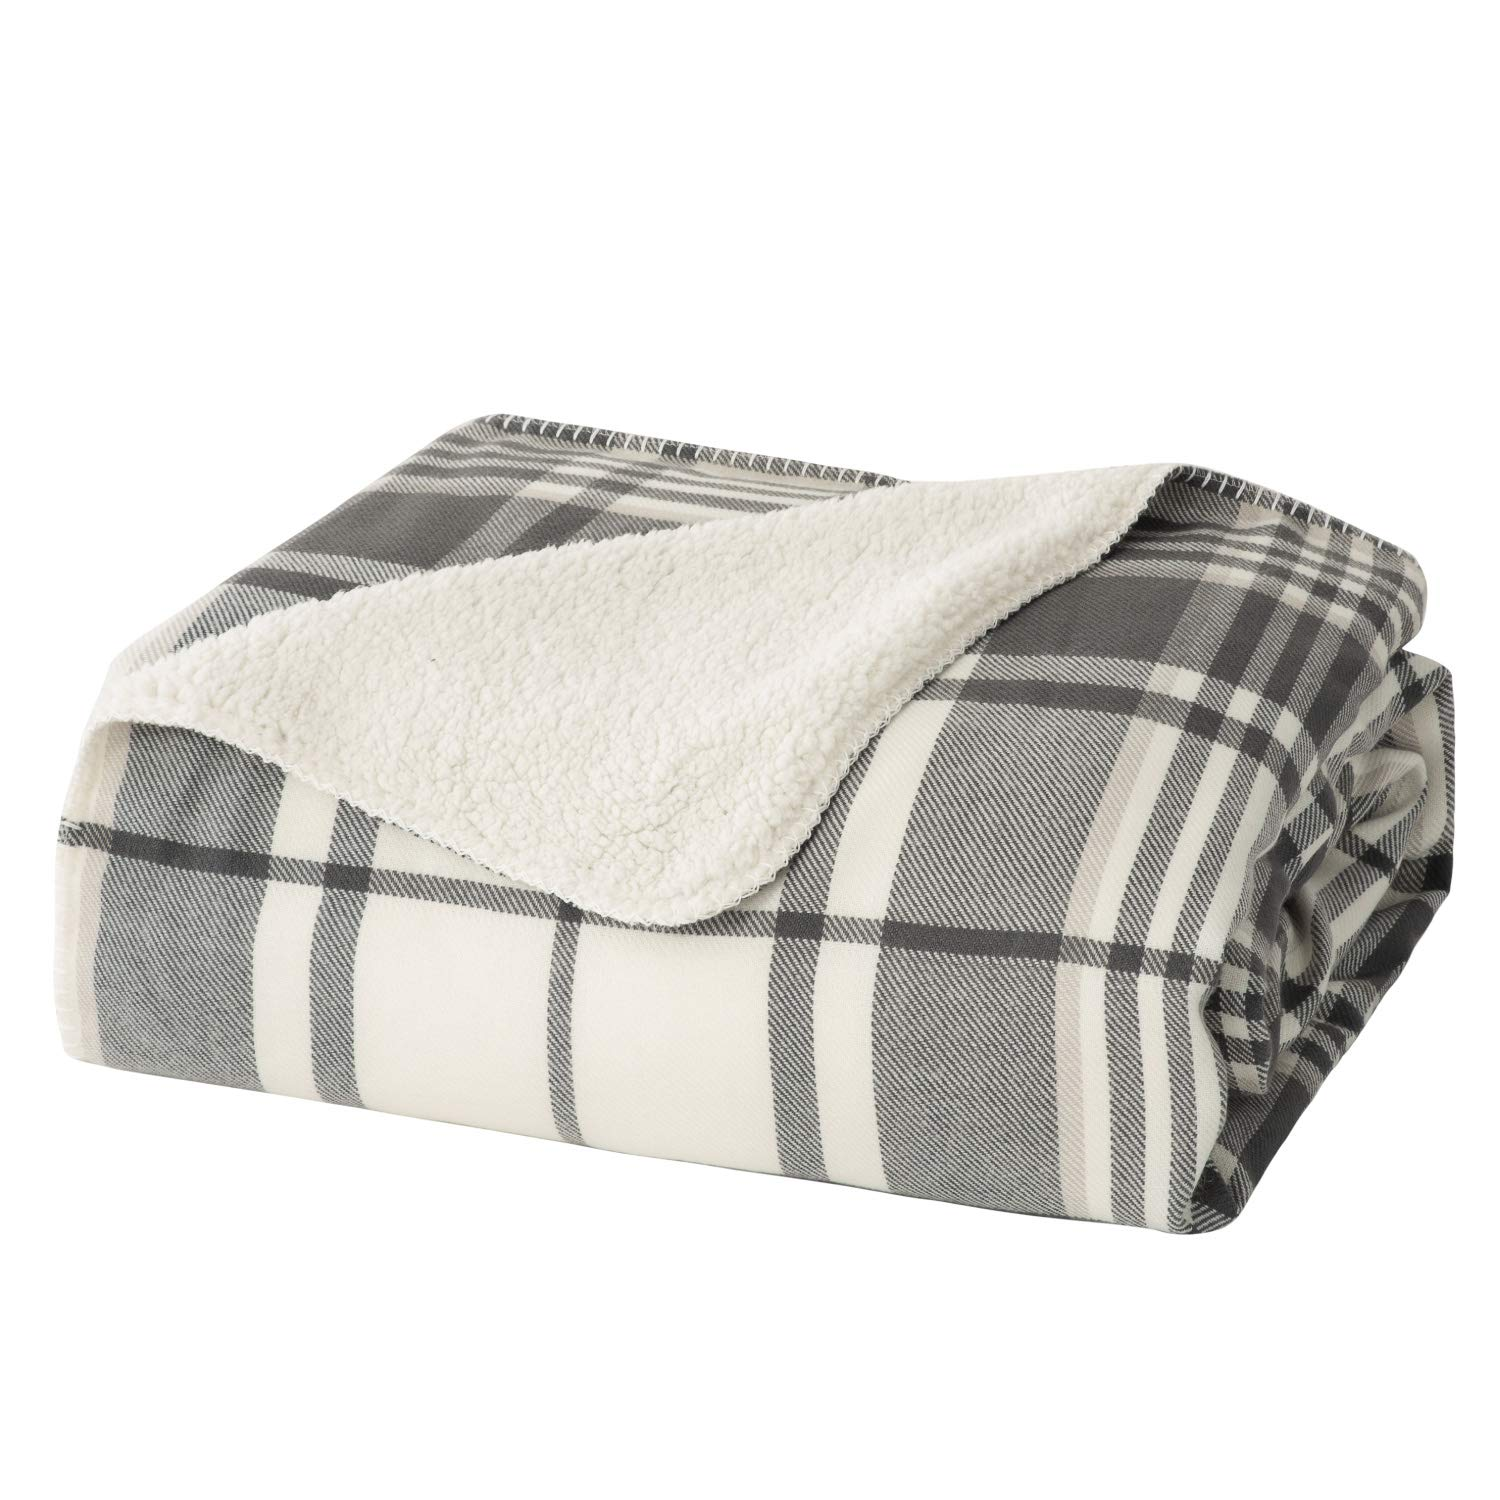 Marvelous Bedsure Lightweight Plaid Sherpa Throw Blanket For Summer Fleece Blanket For Couch Soft Warm Black White 50 X 60 Inches Creativecarmelina Interior Chair Design Creativecarmelinacom